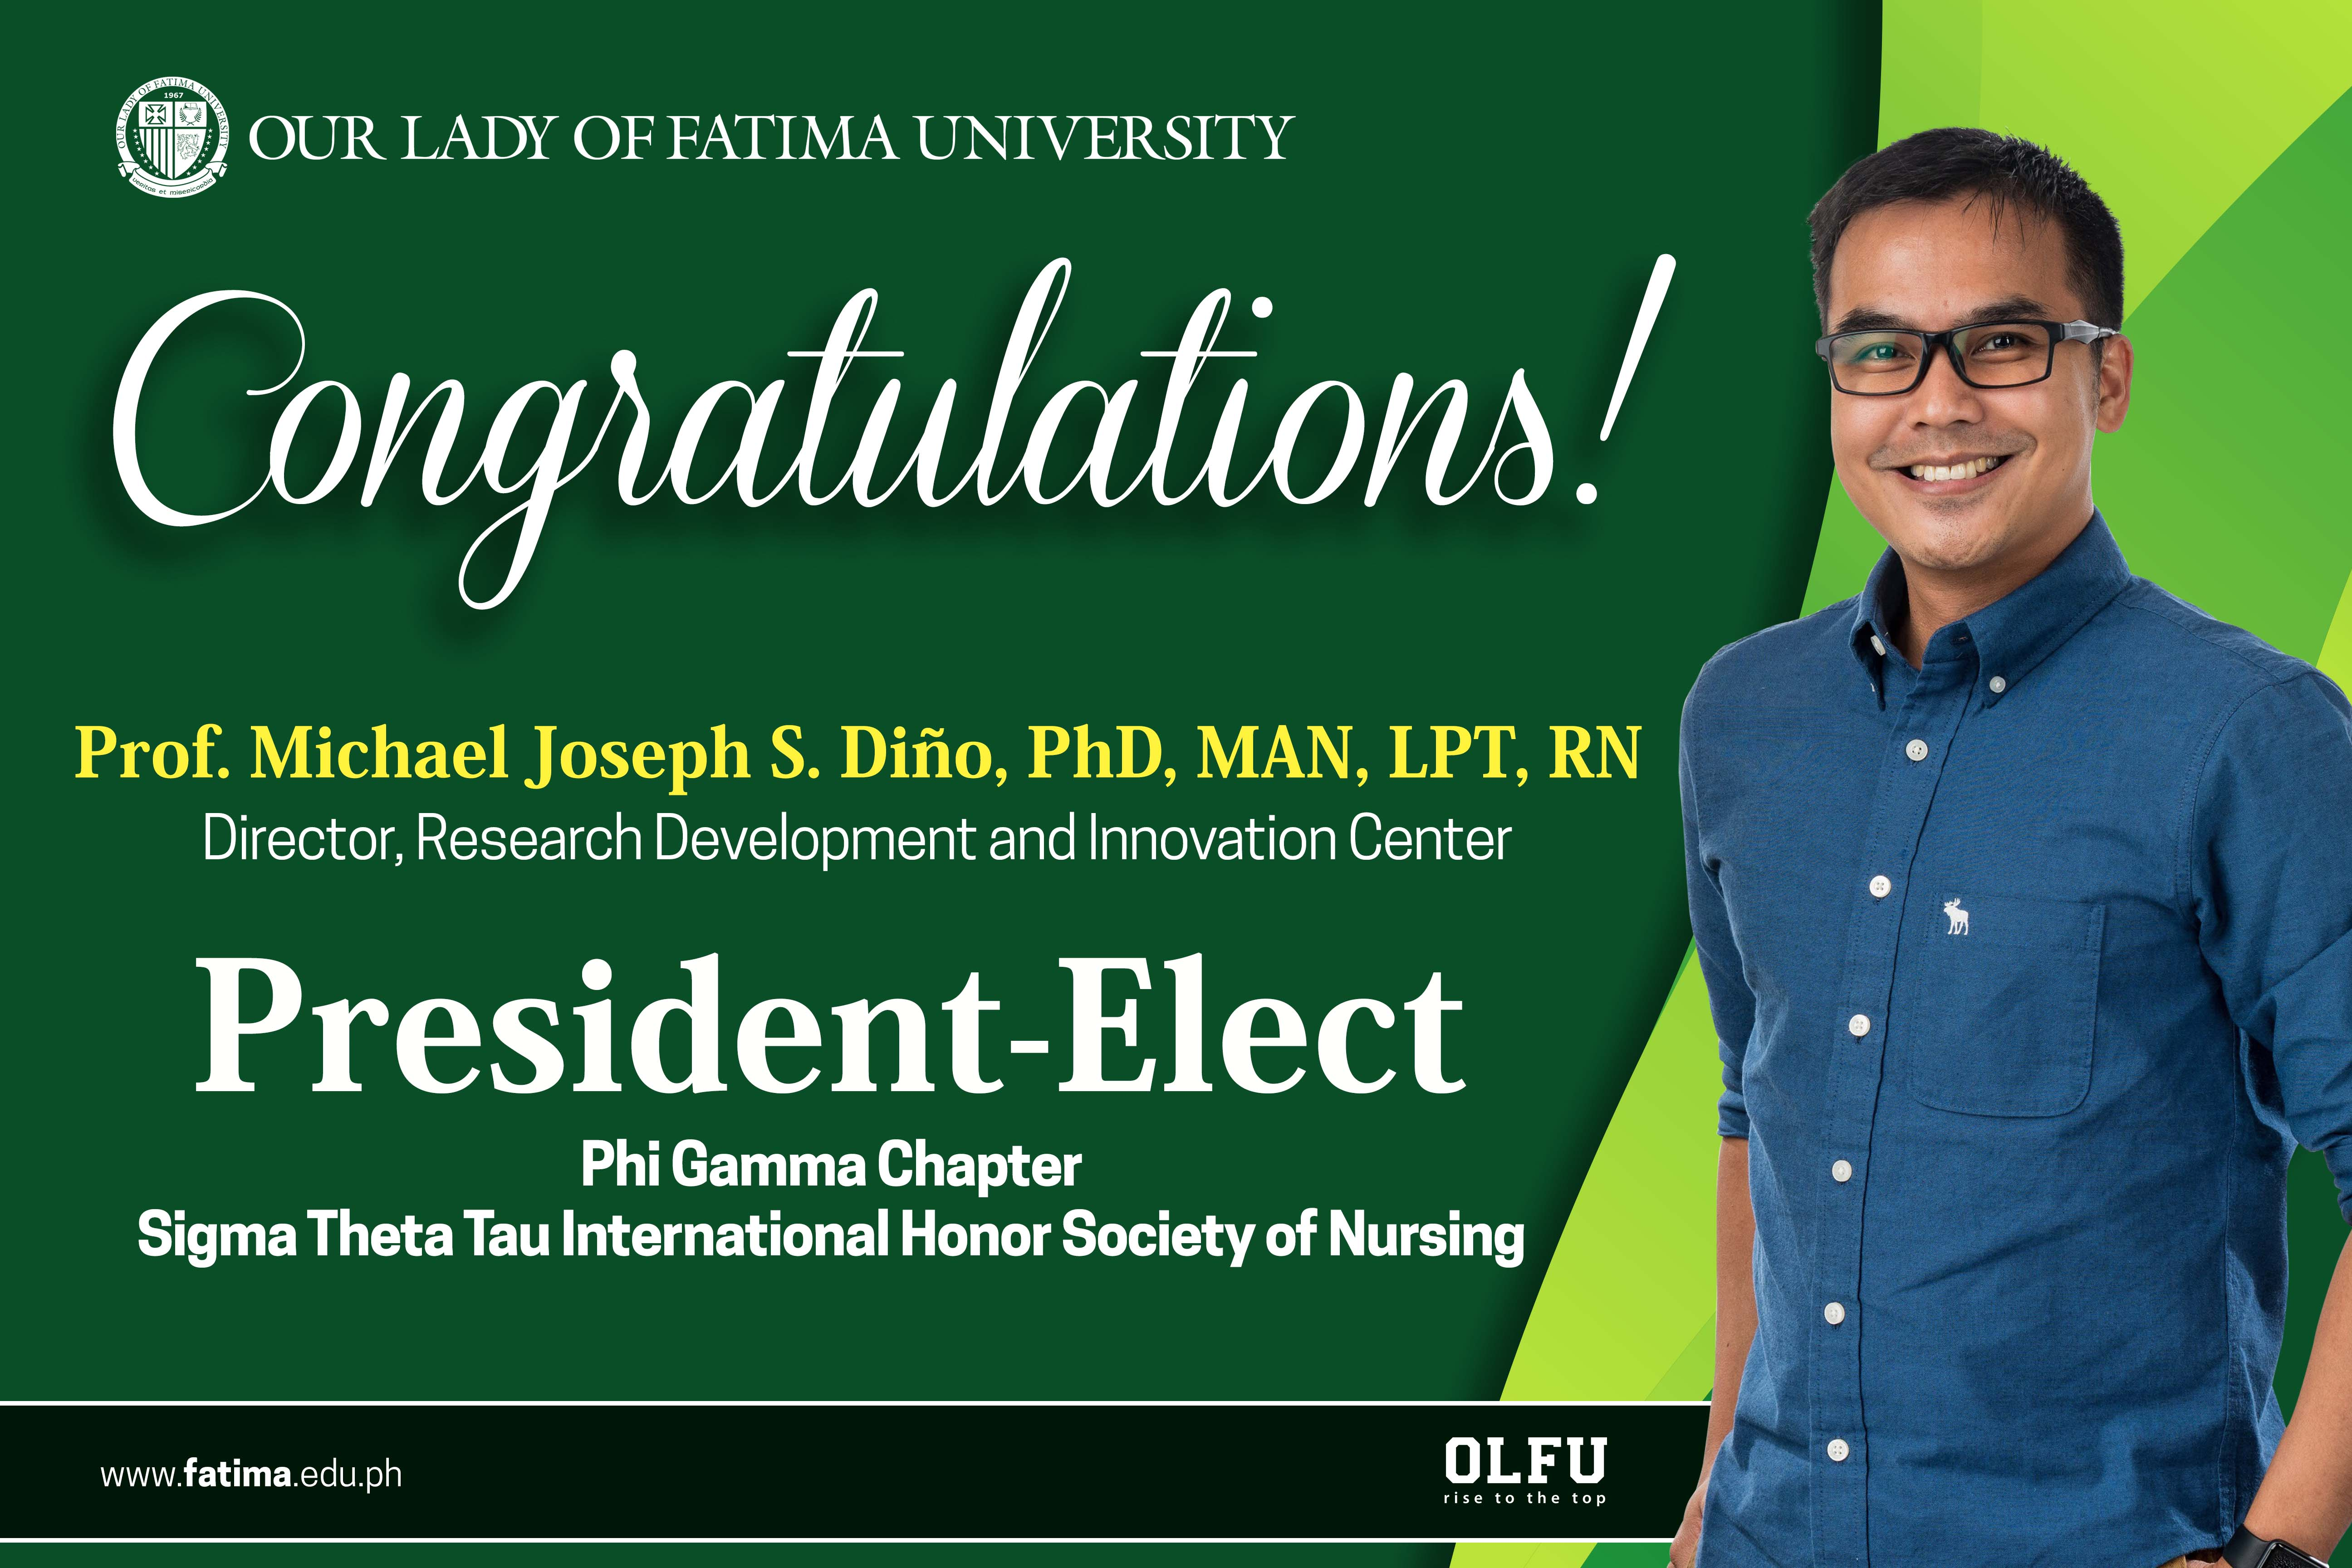 RDIC's Dr. Dino declared President-Elect of Sigma's Phi Gamma Chapter